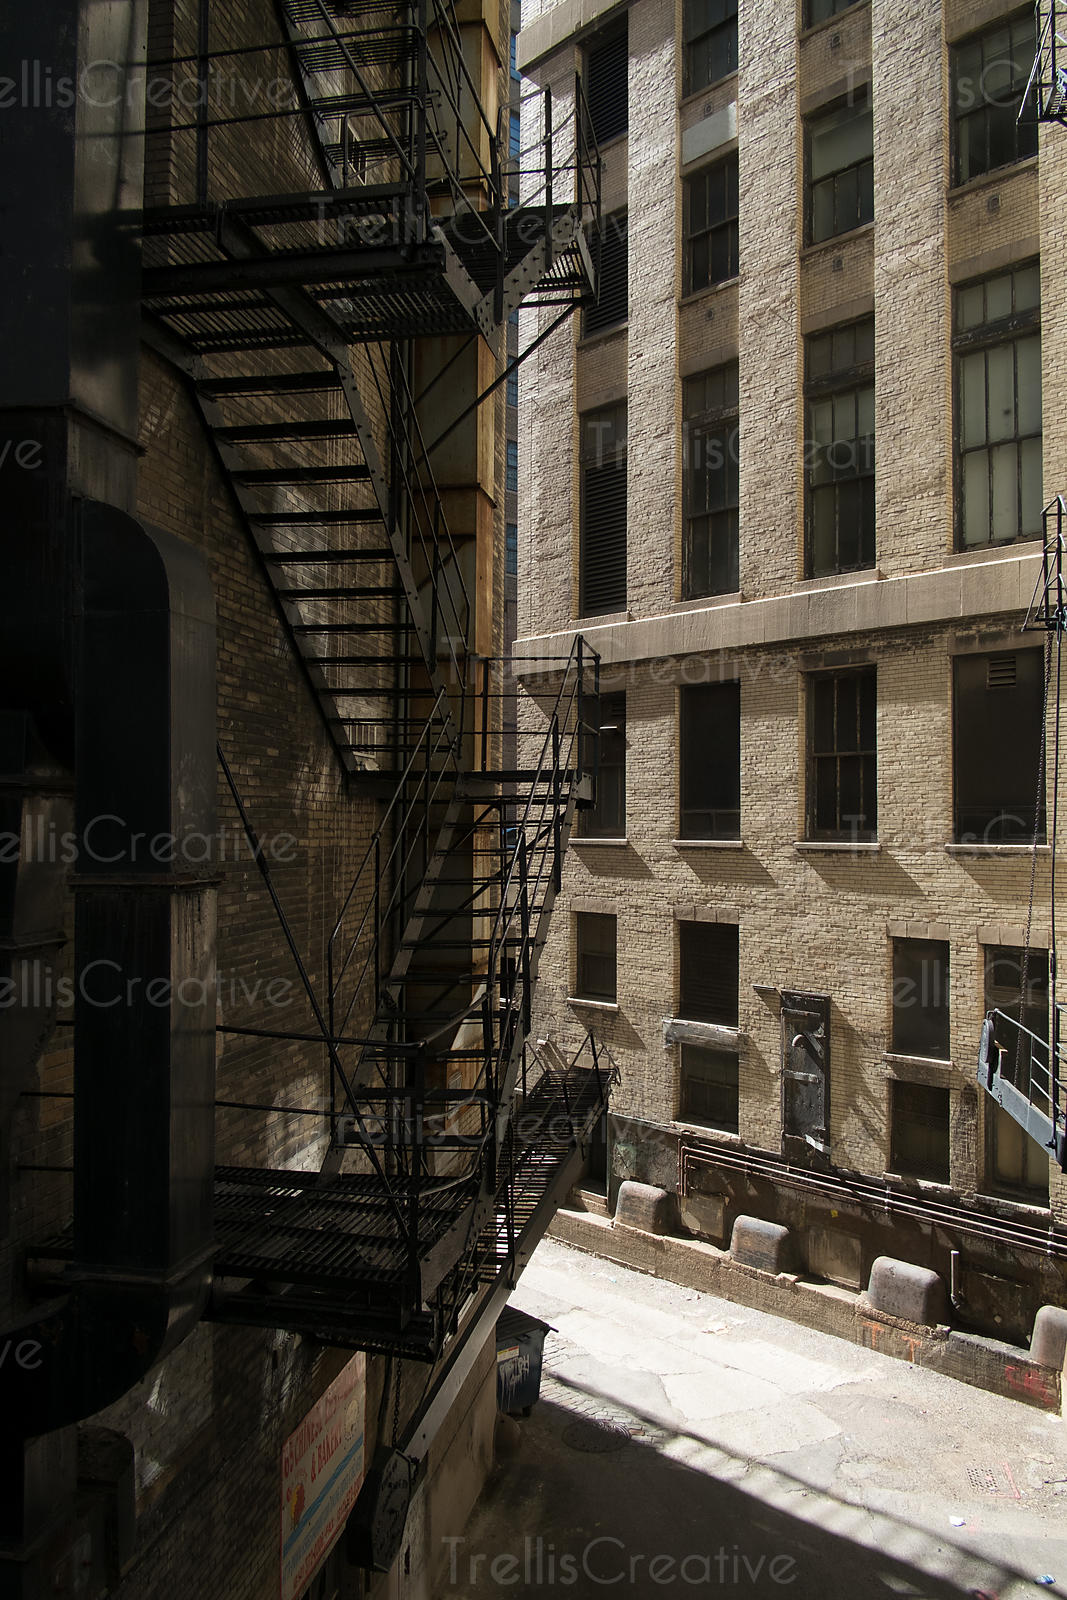 Alley View Of Iron Fire Escape Staircases On The Exterior Of A Building At  Chicago,